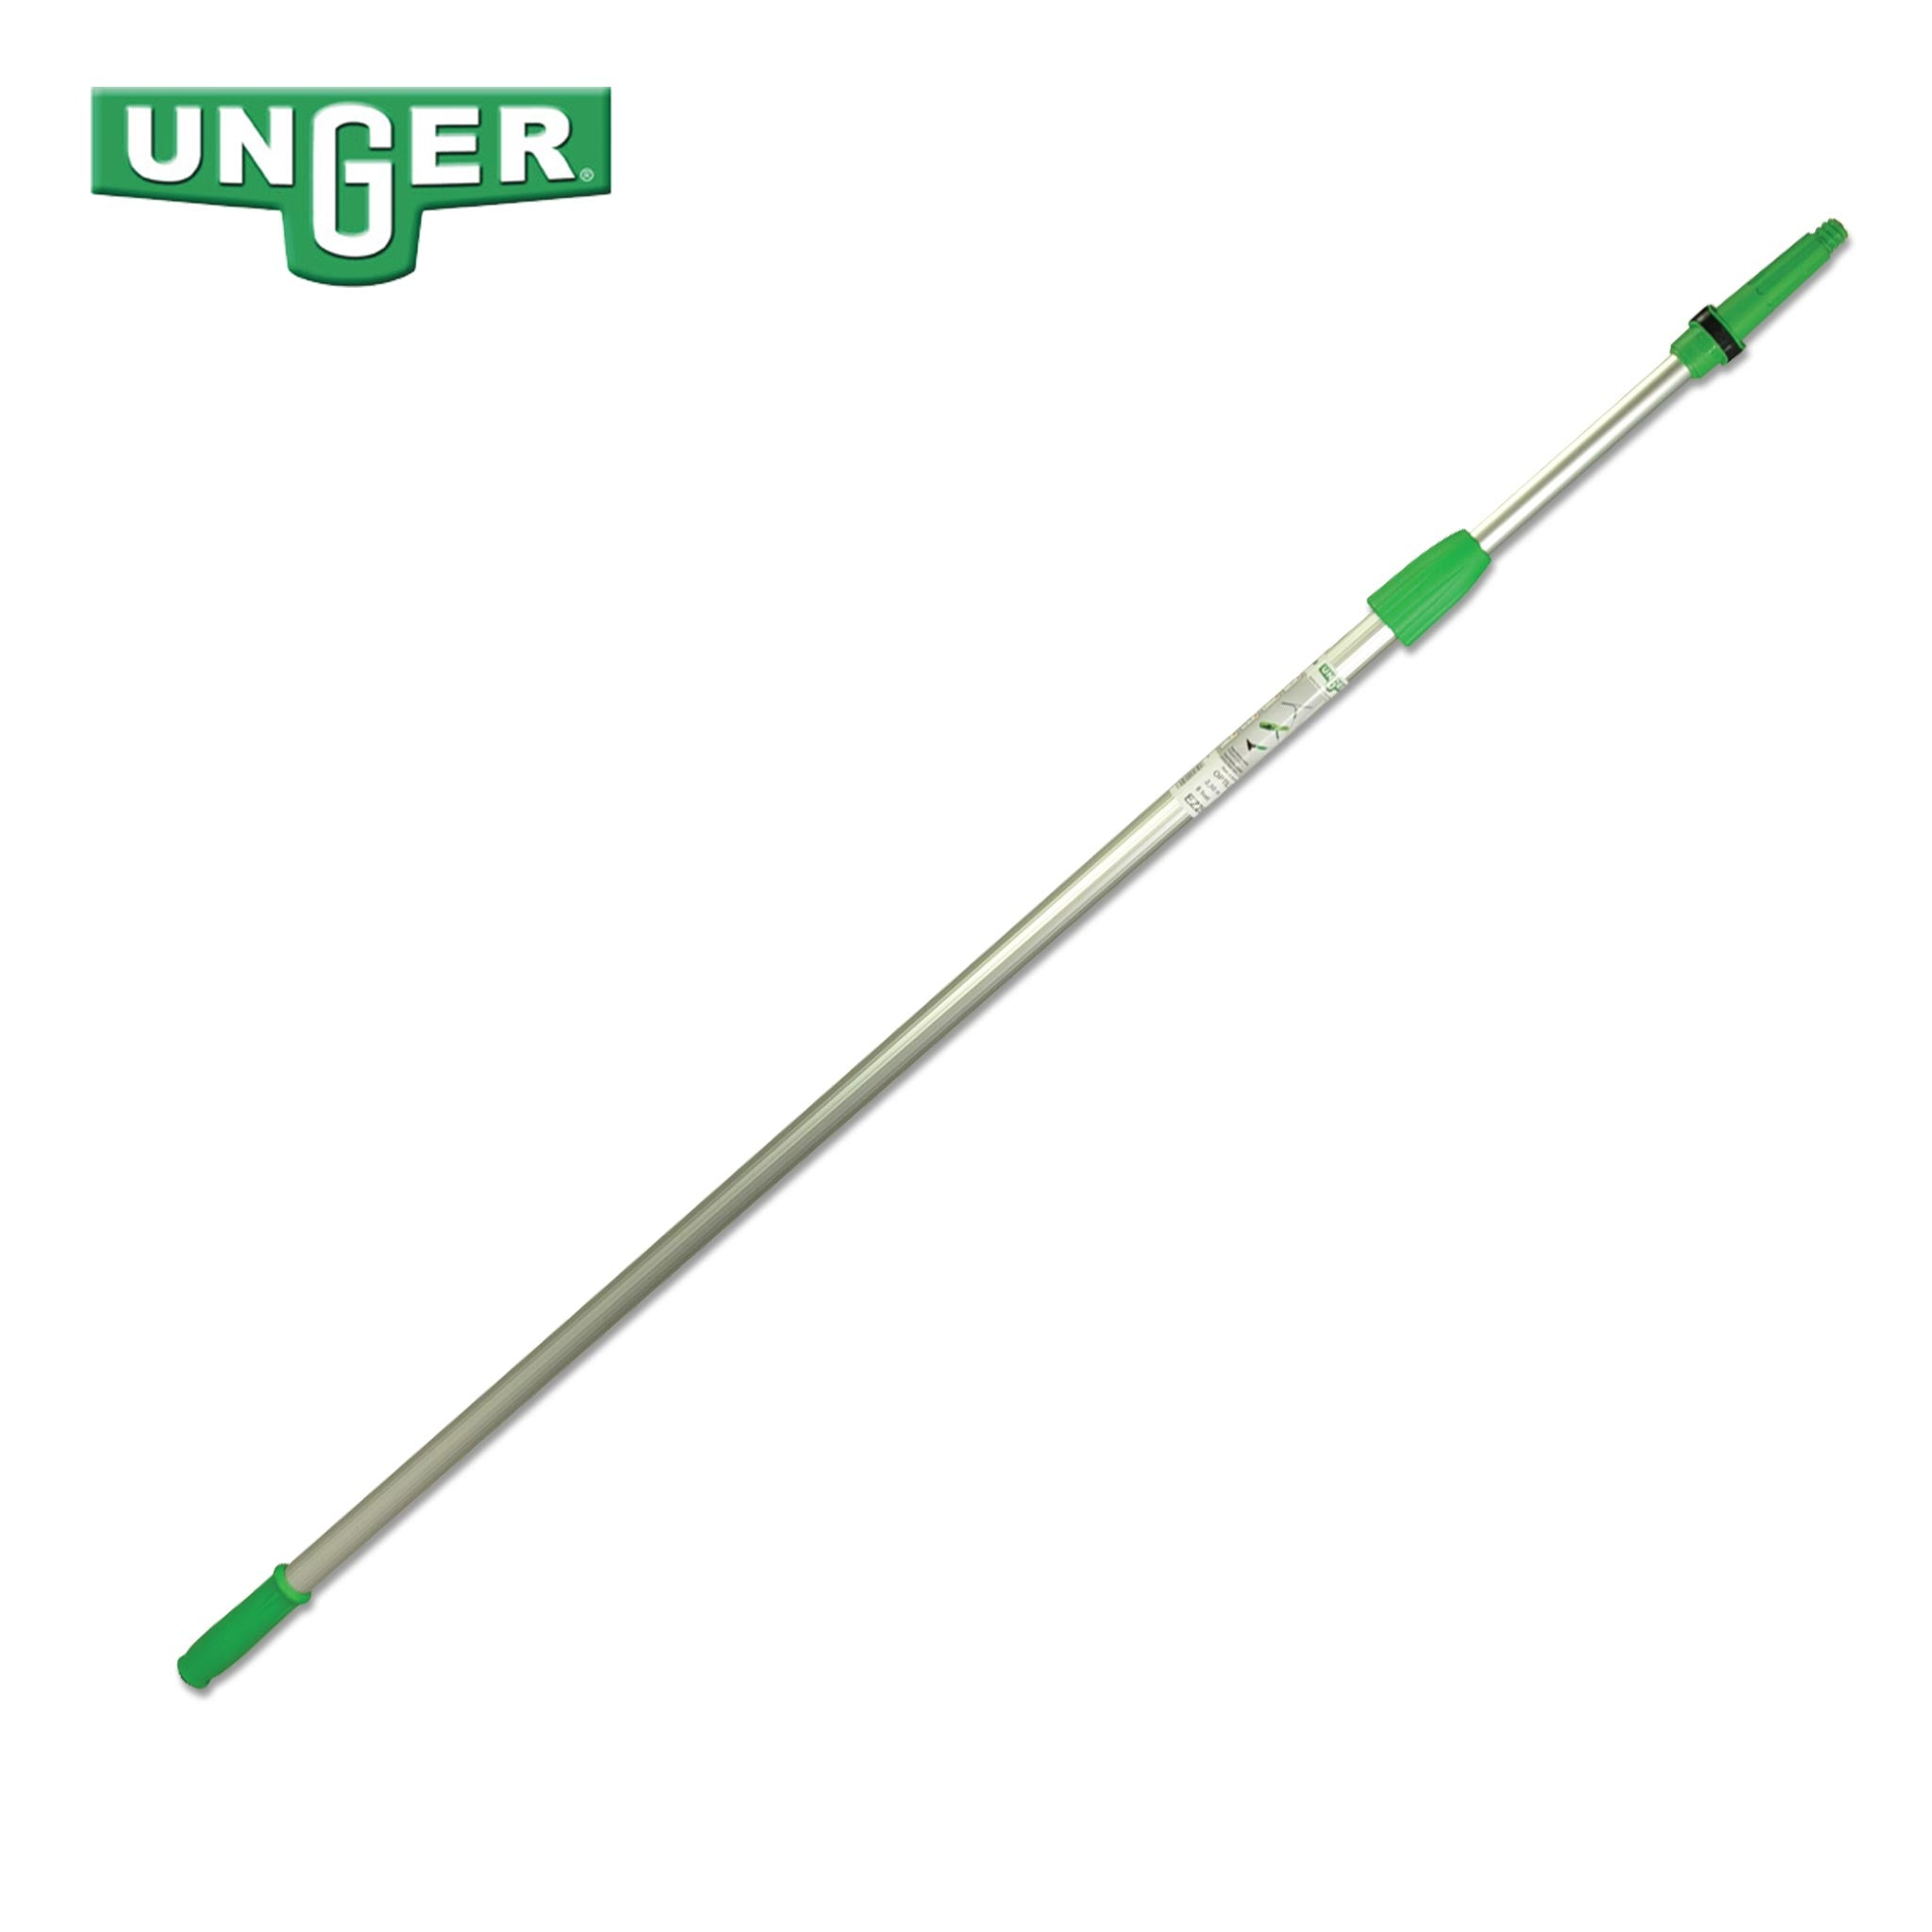 Unger OptiLoc Extension Pole